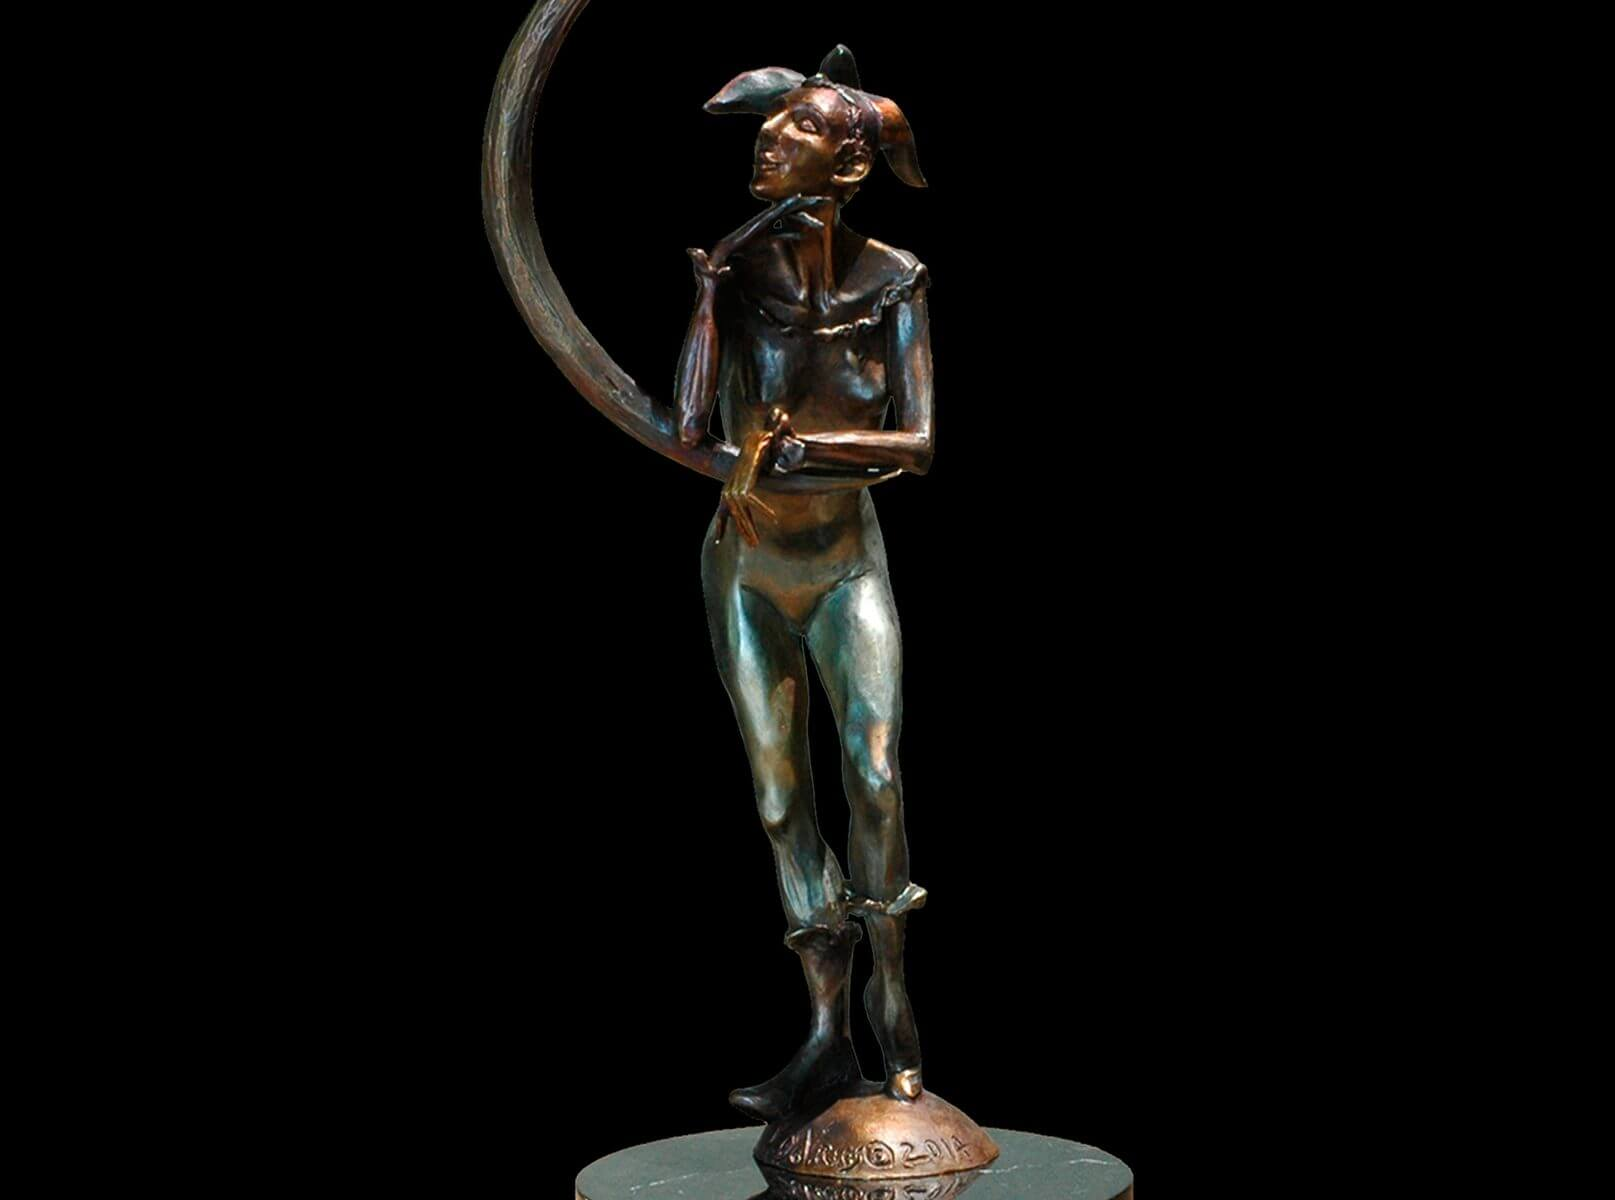 Moonlight a female bronze jester figurative sculpture by Andrew DeVries